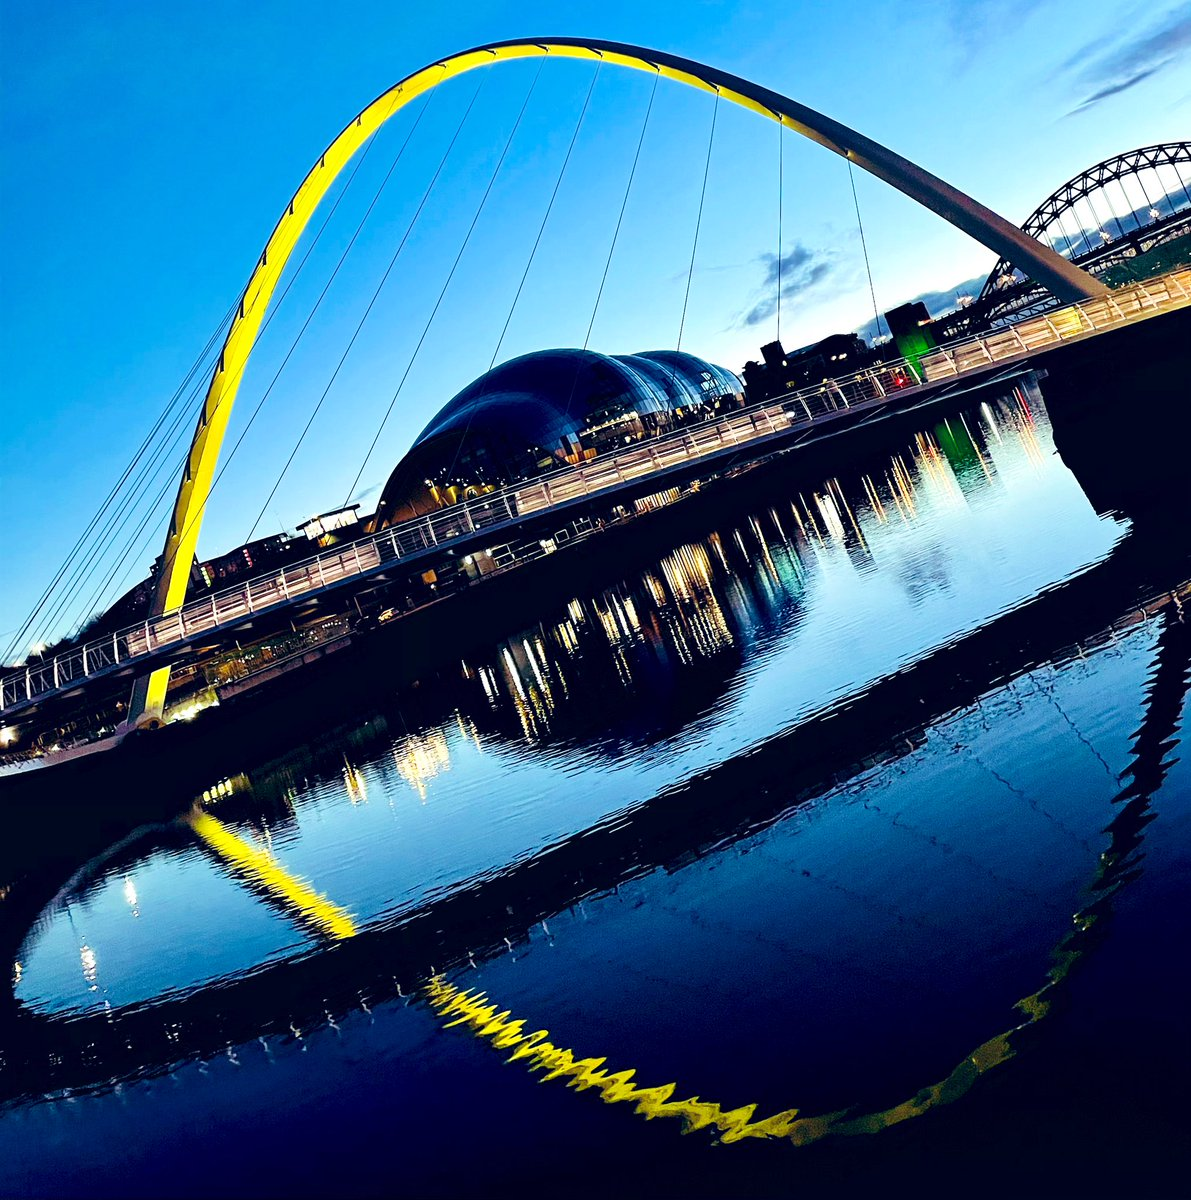 """""""#Walking brings me back to myself"""" 💛   We enjoy our daily #walks & look forward to them! It's a moment to clear our heads & chat about the day   #FridayFeeling #newcastle #quayside #photography #sostraveluk #mentalhealth #walk #exercise #lockdown #northeast"""